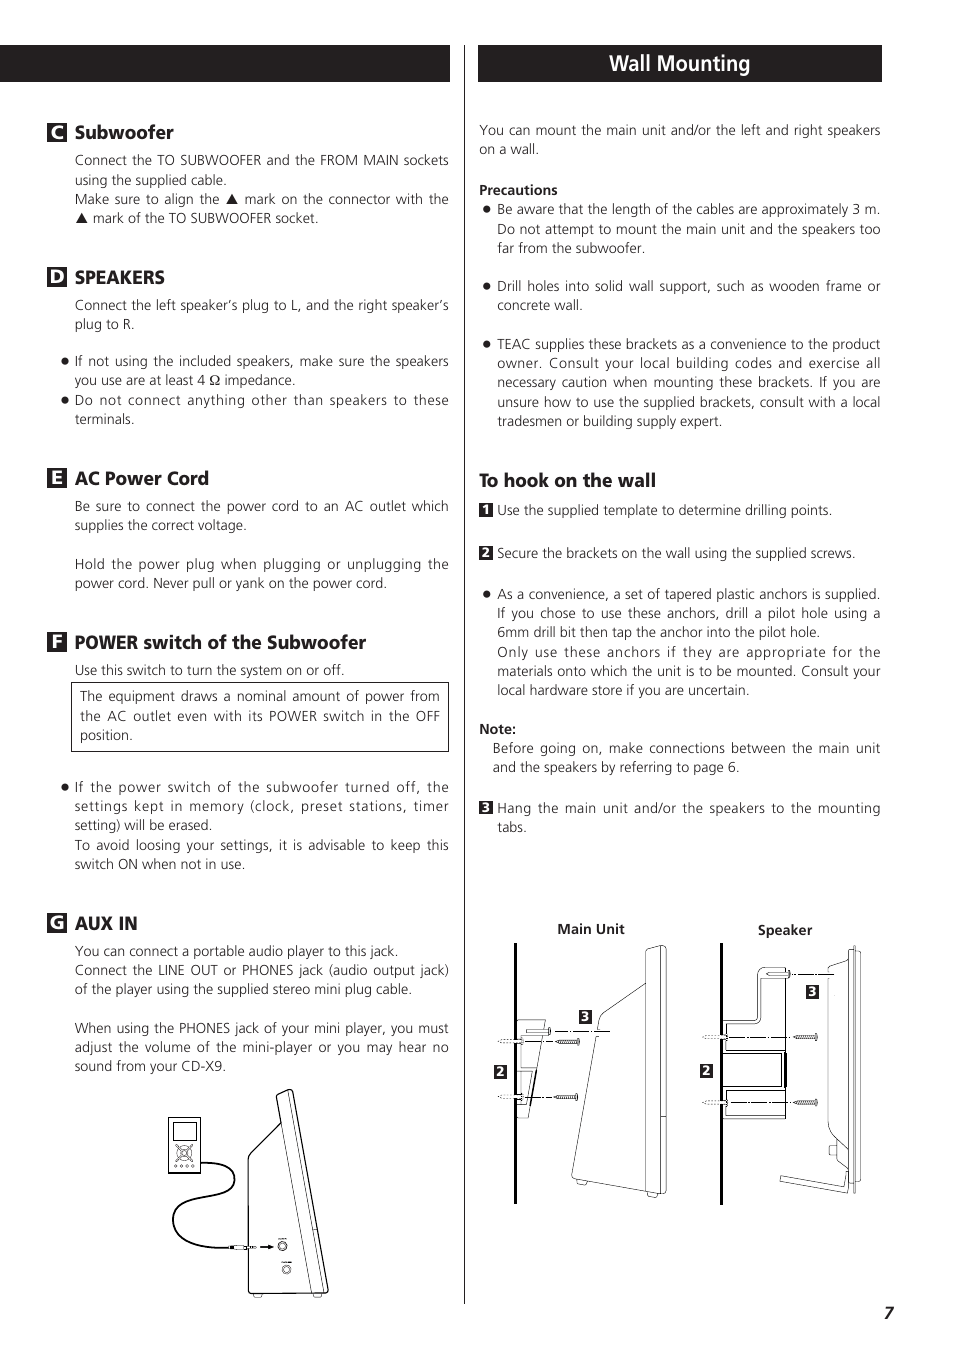 hight resolution of wall mounting subwoofer speakers teac cd x9 user manual page 7 24